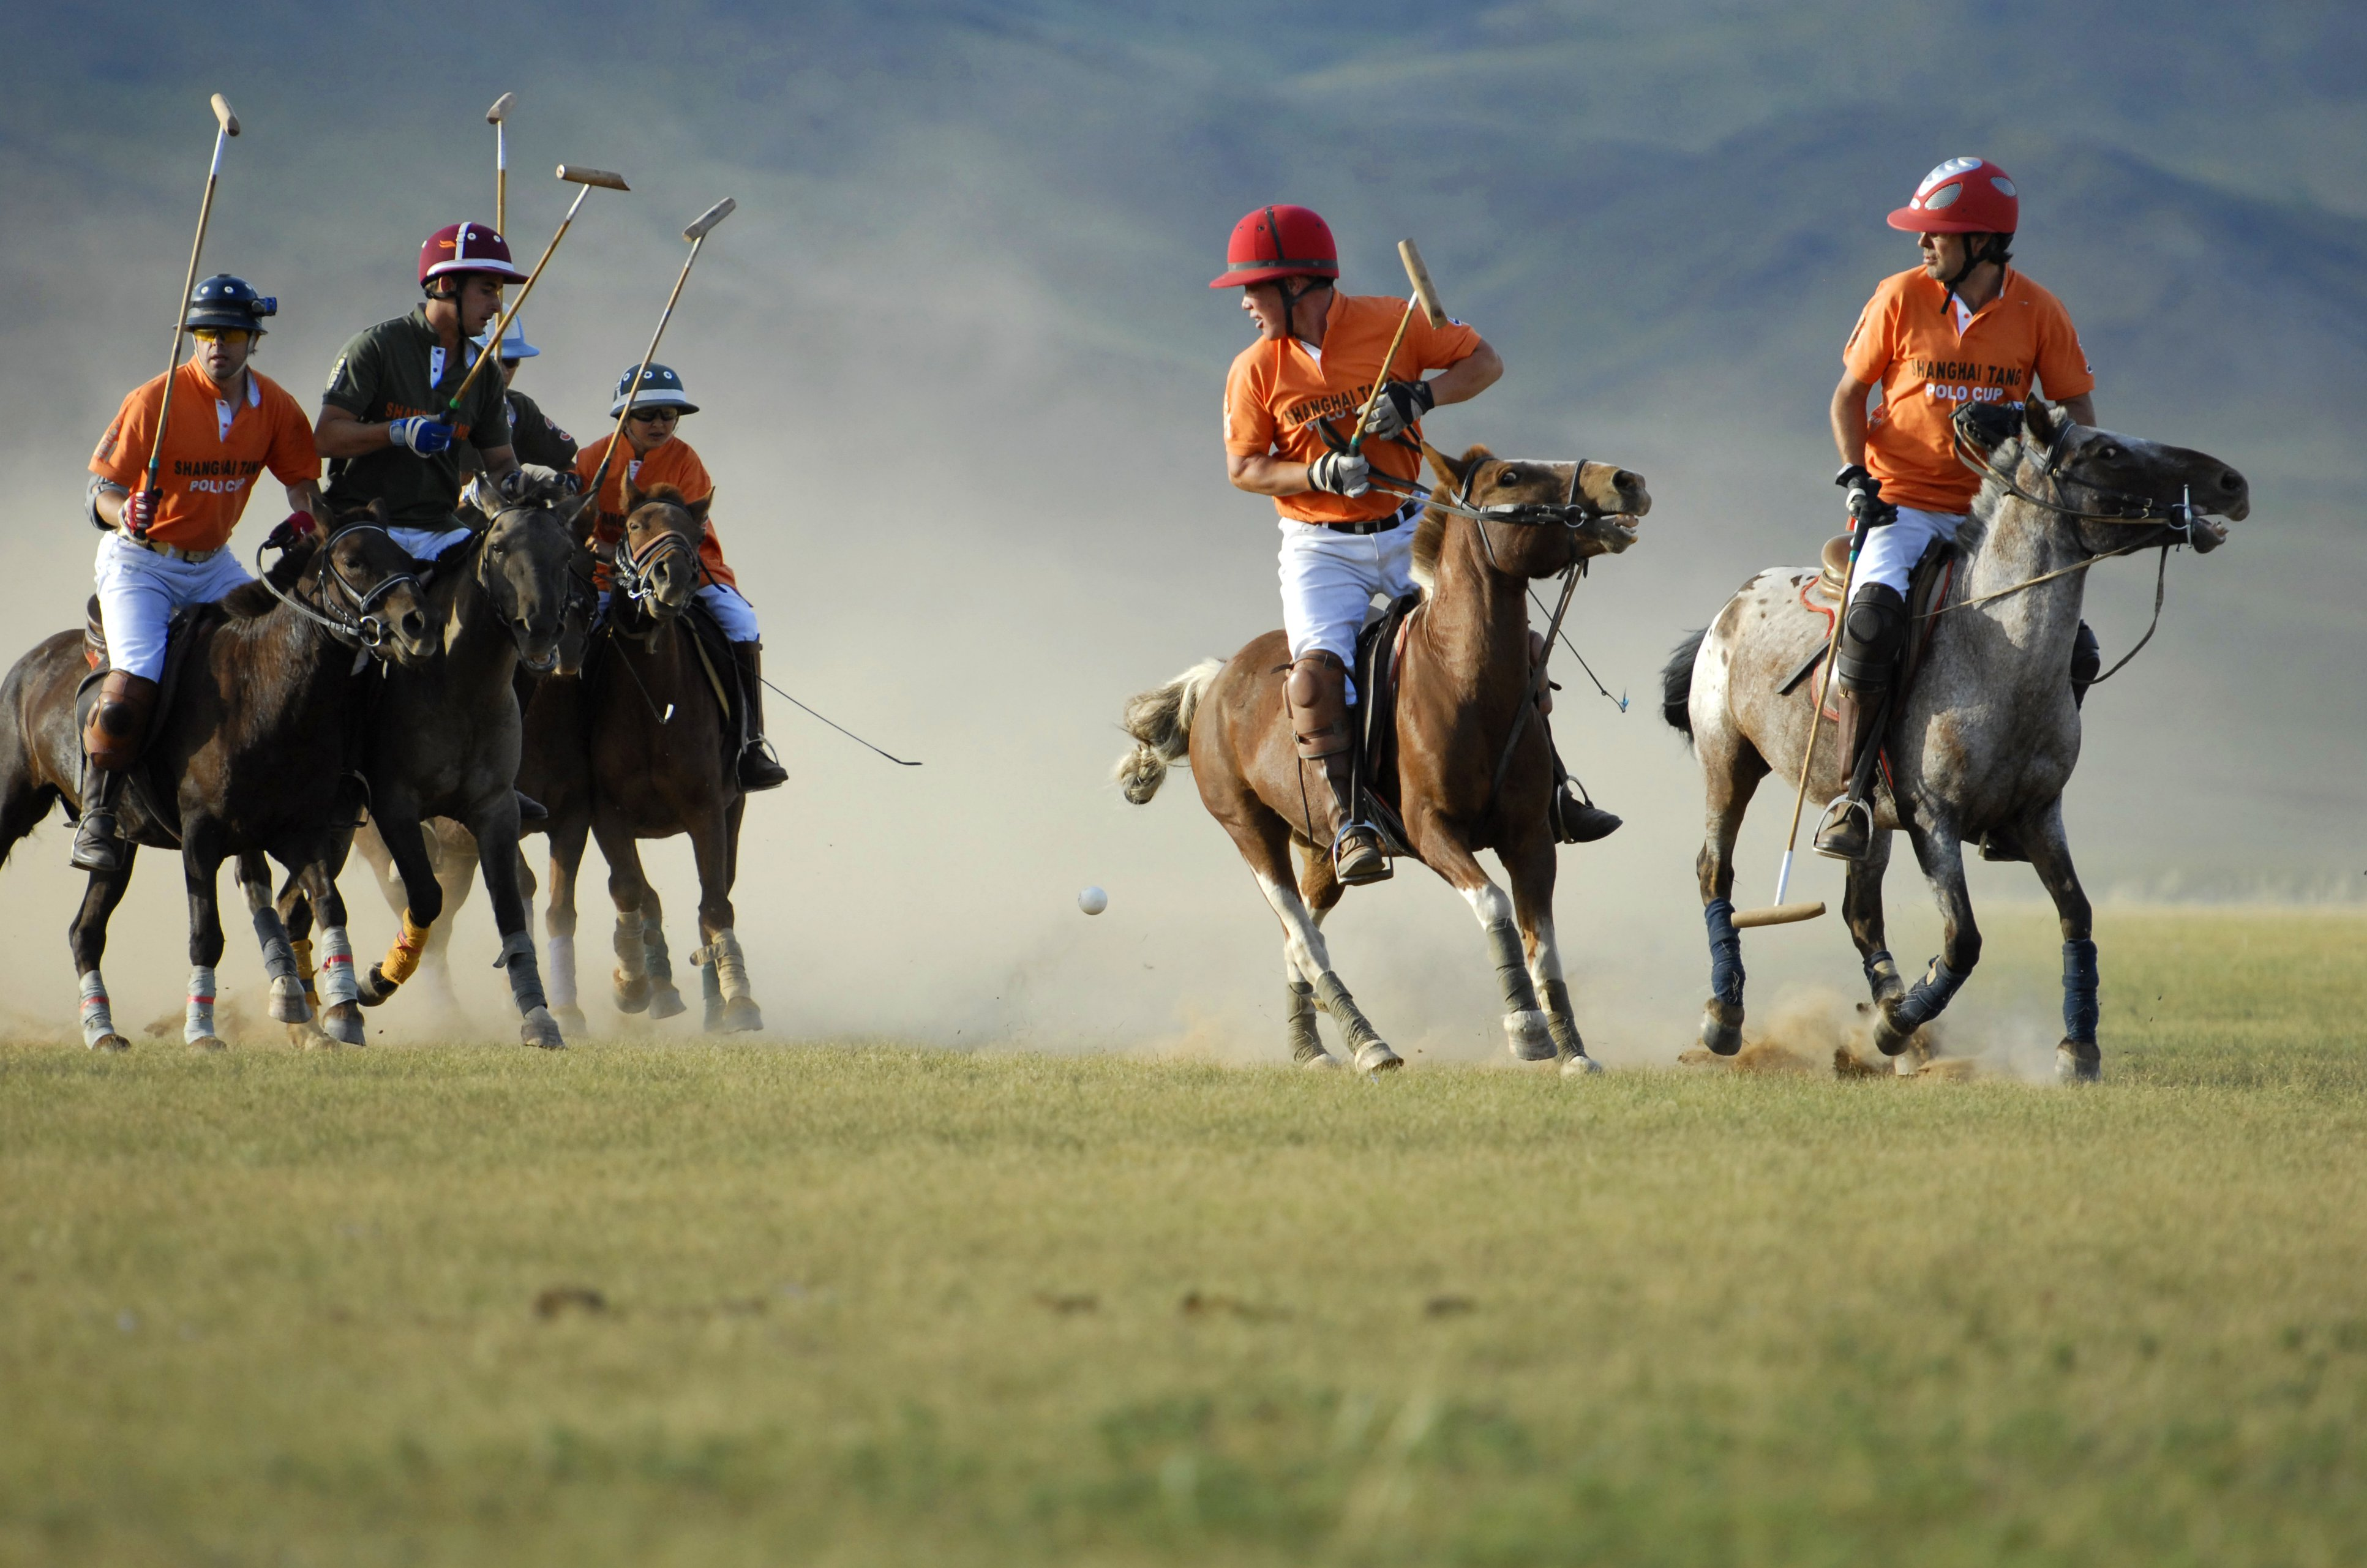 Rebirth of Polo in Mongolia